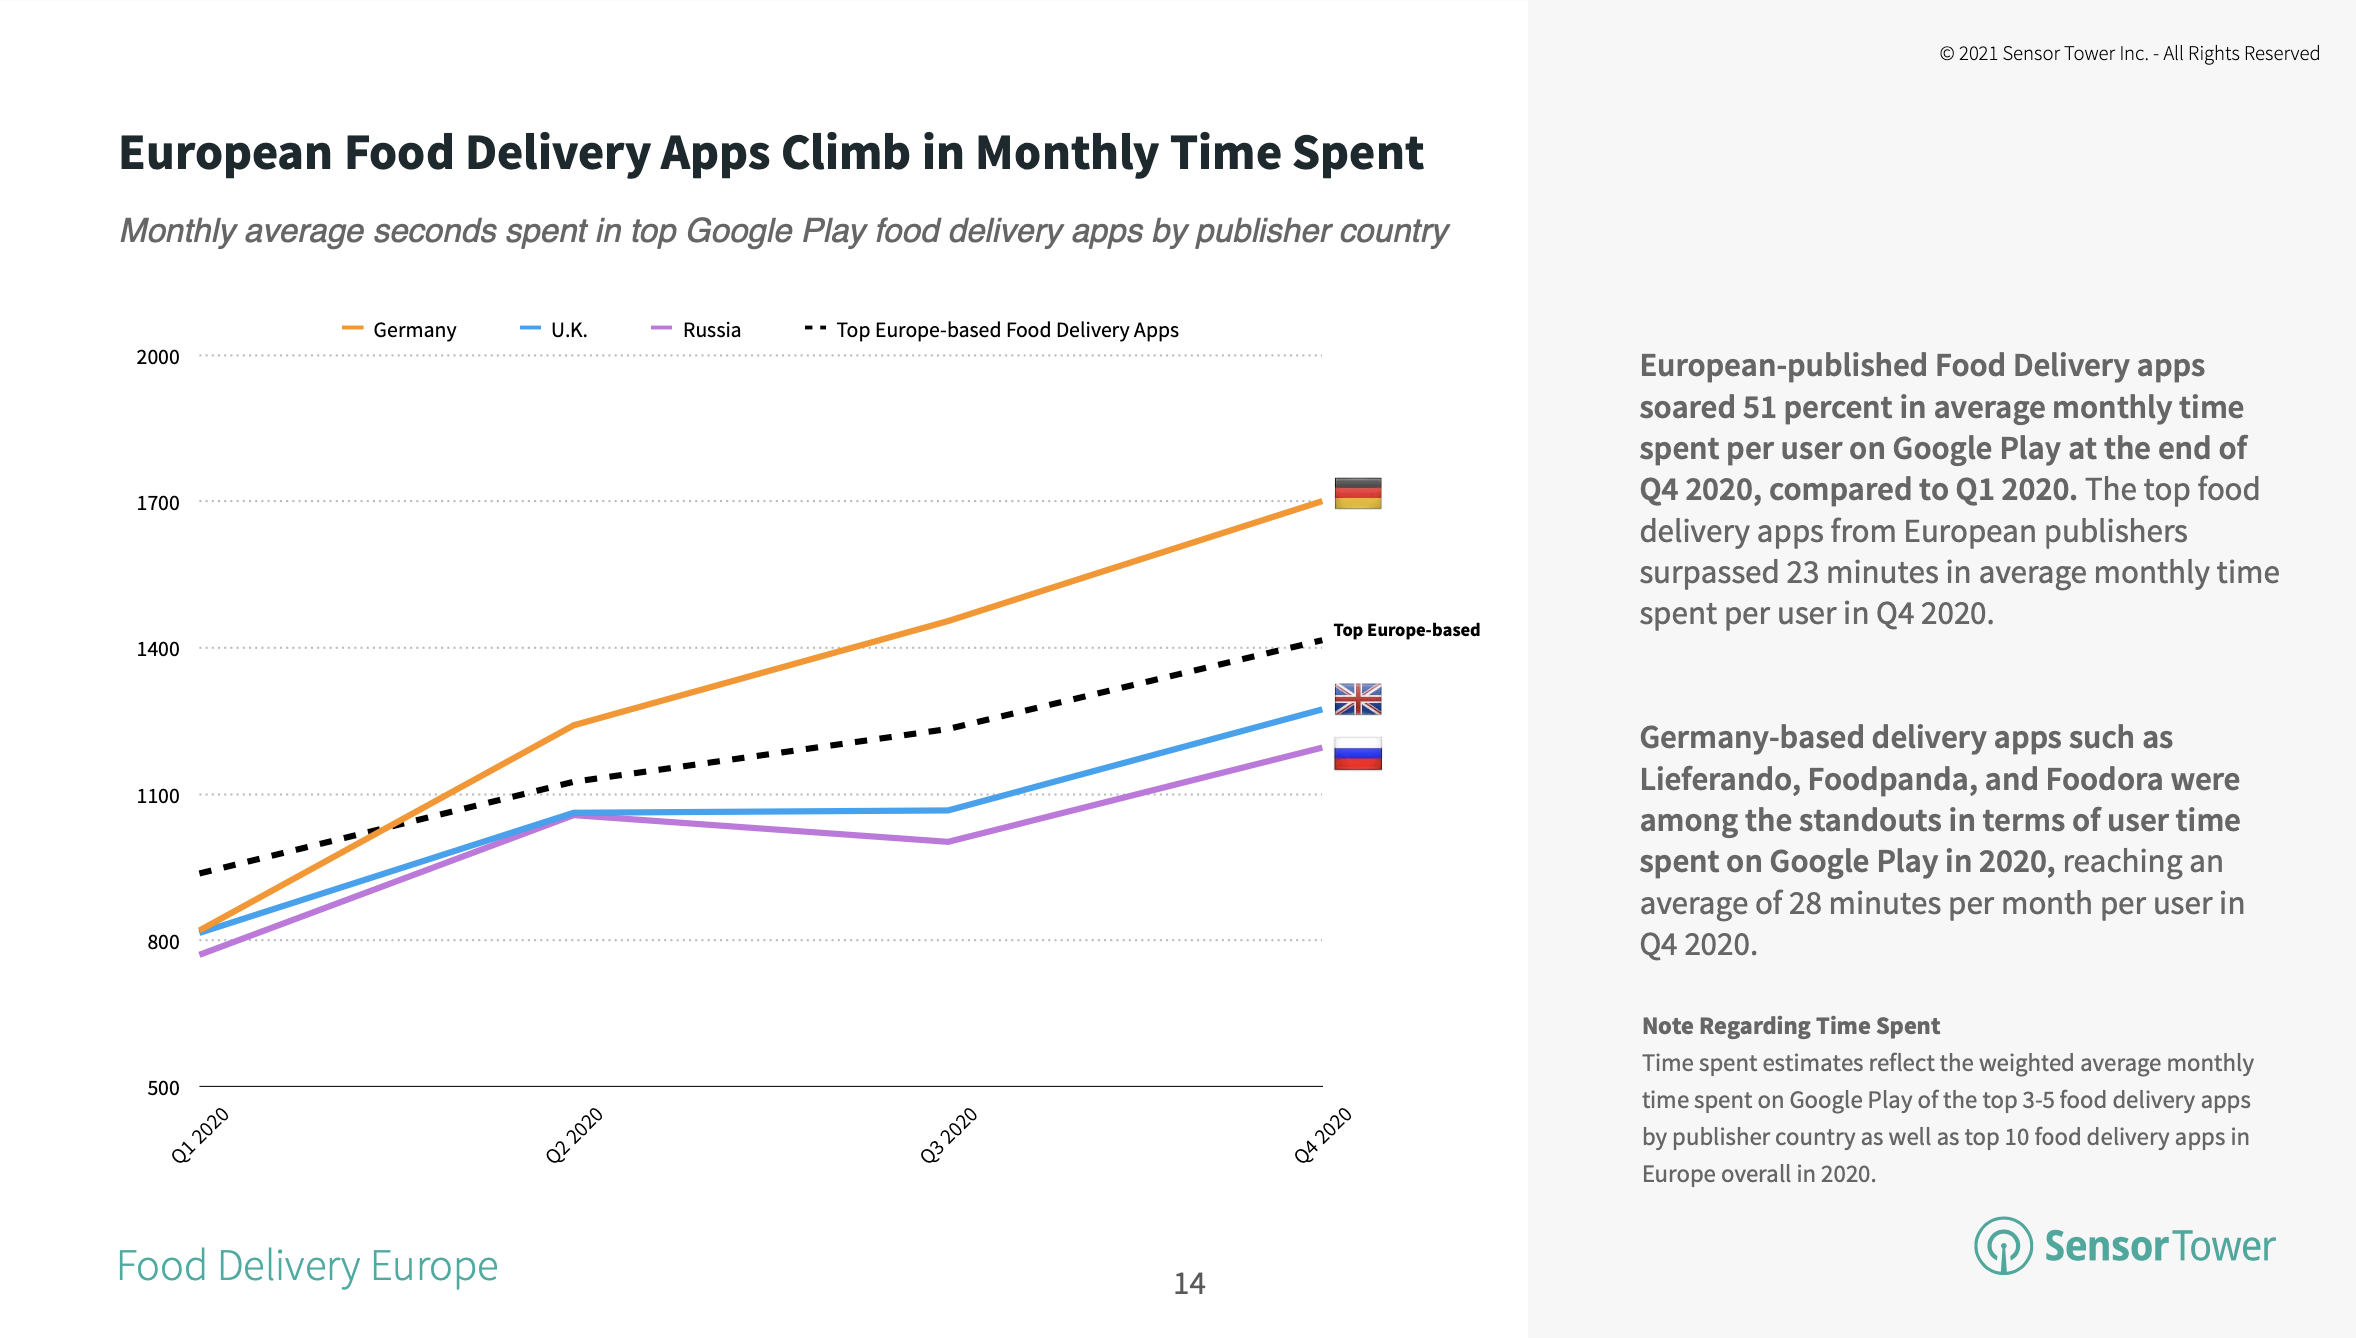 Major food delivery apps in Europe exceeded 1,400 seconds in monthly time spent in Q4 2020.